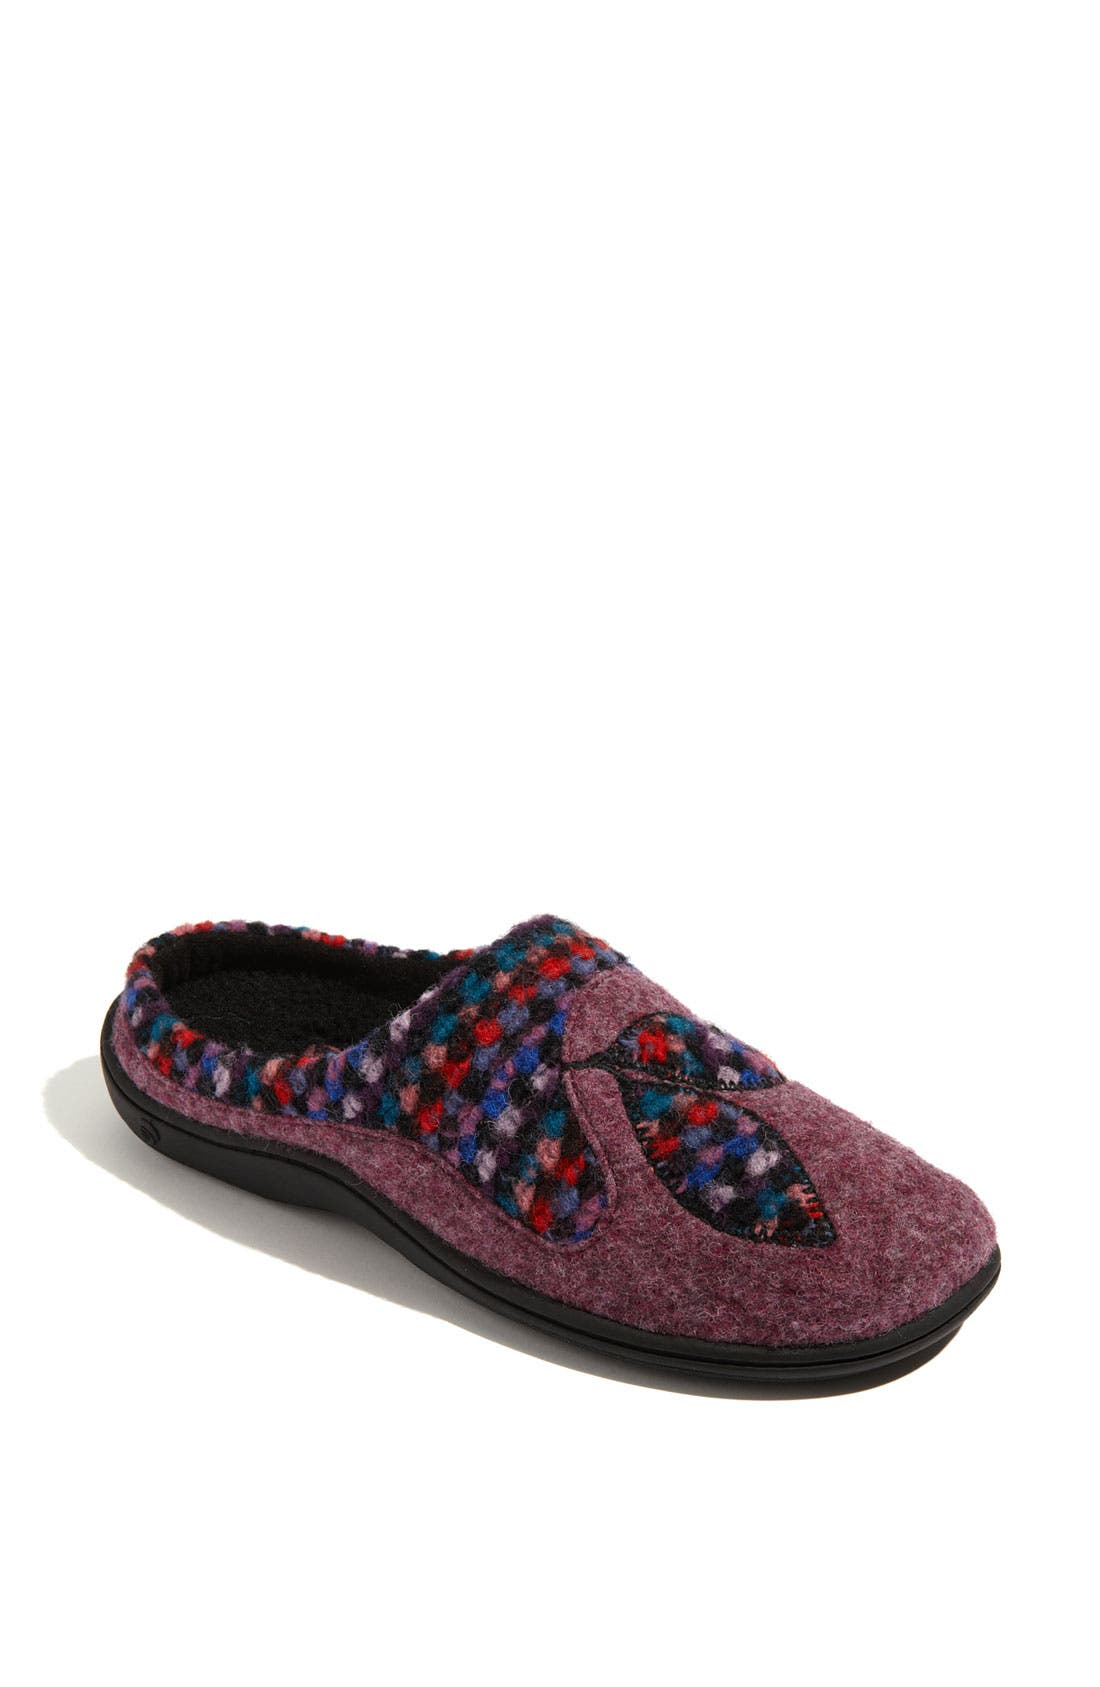 Main Image - Acorn 'Drew' Slipper